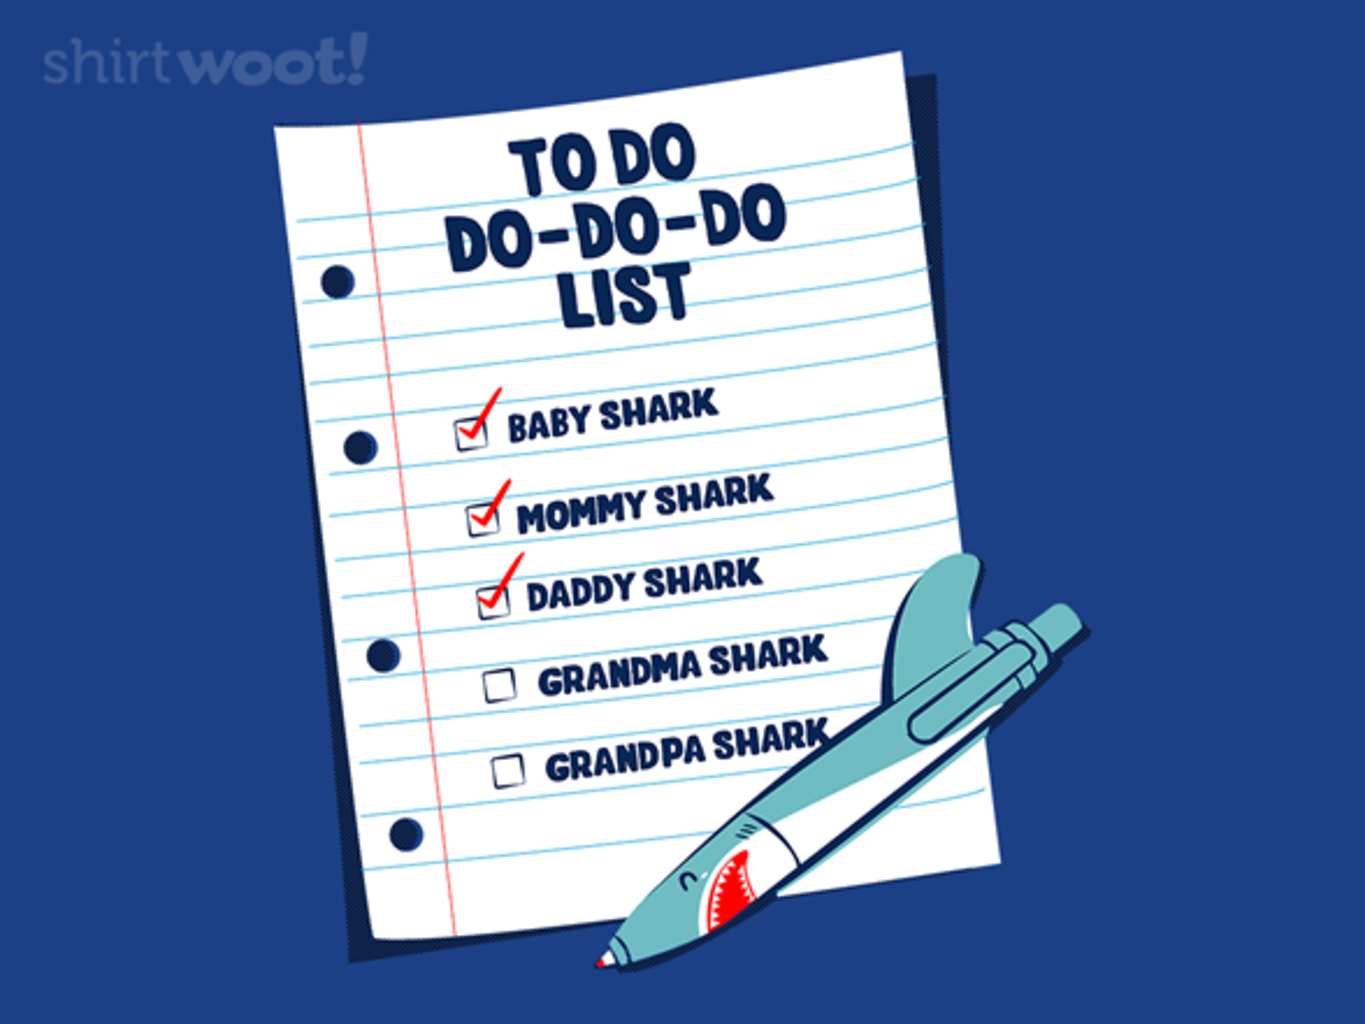 Woot!: To Do Do Do List